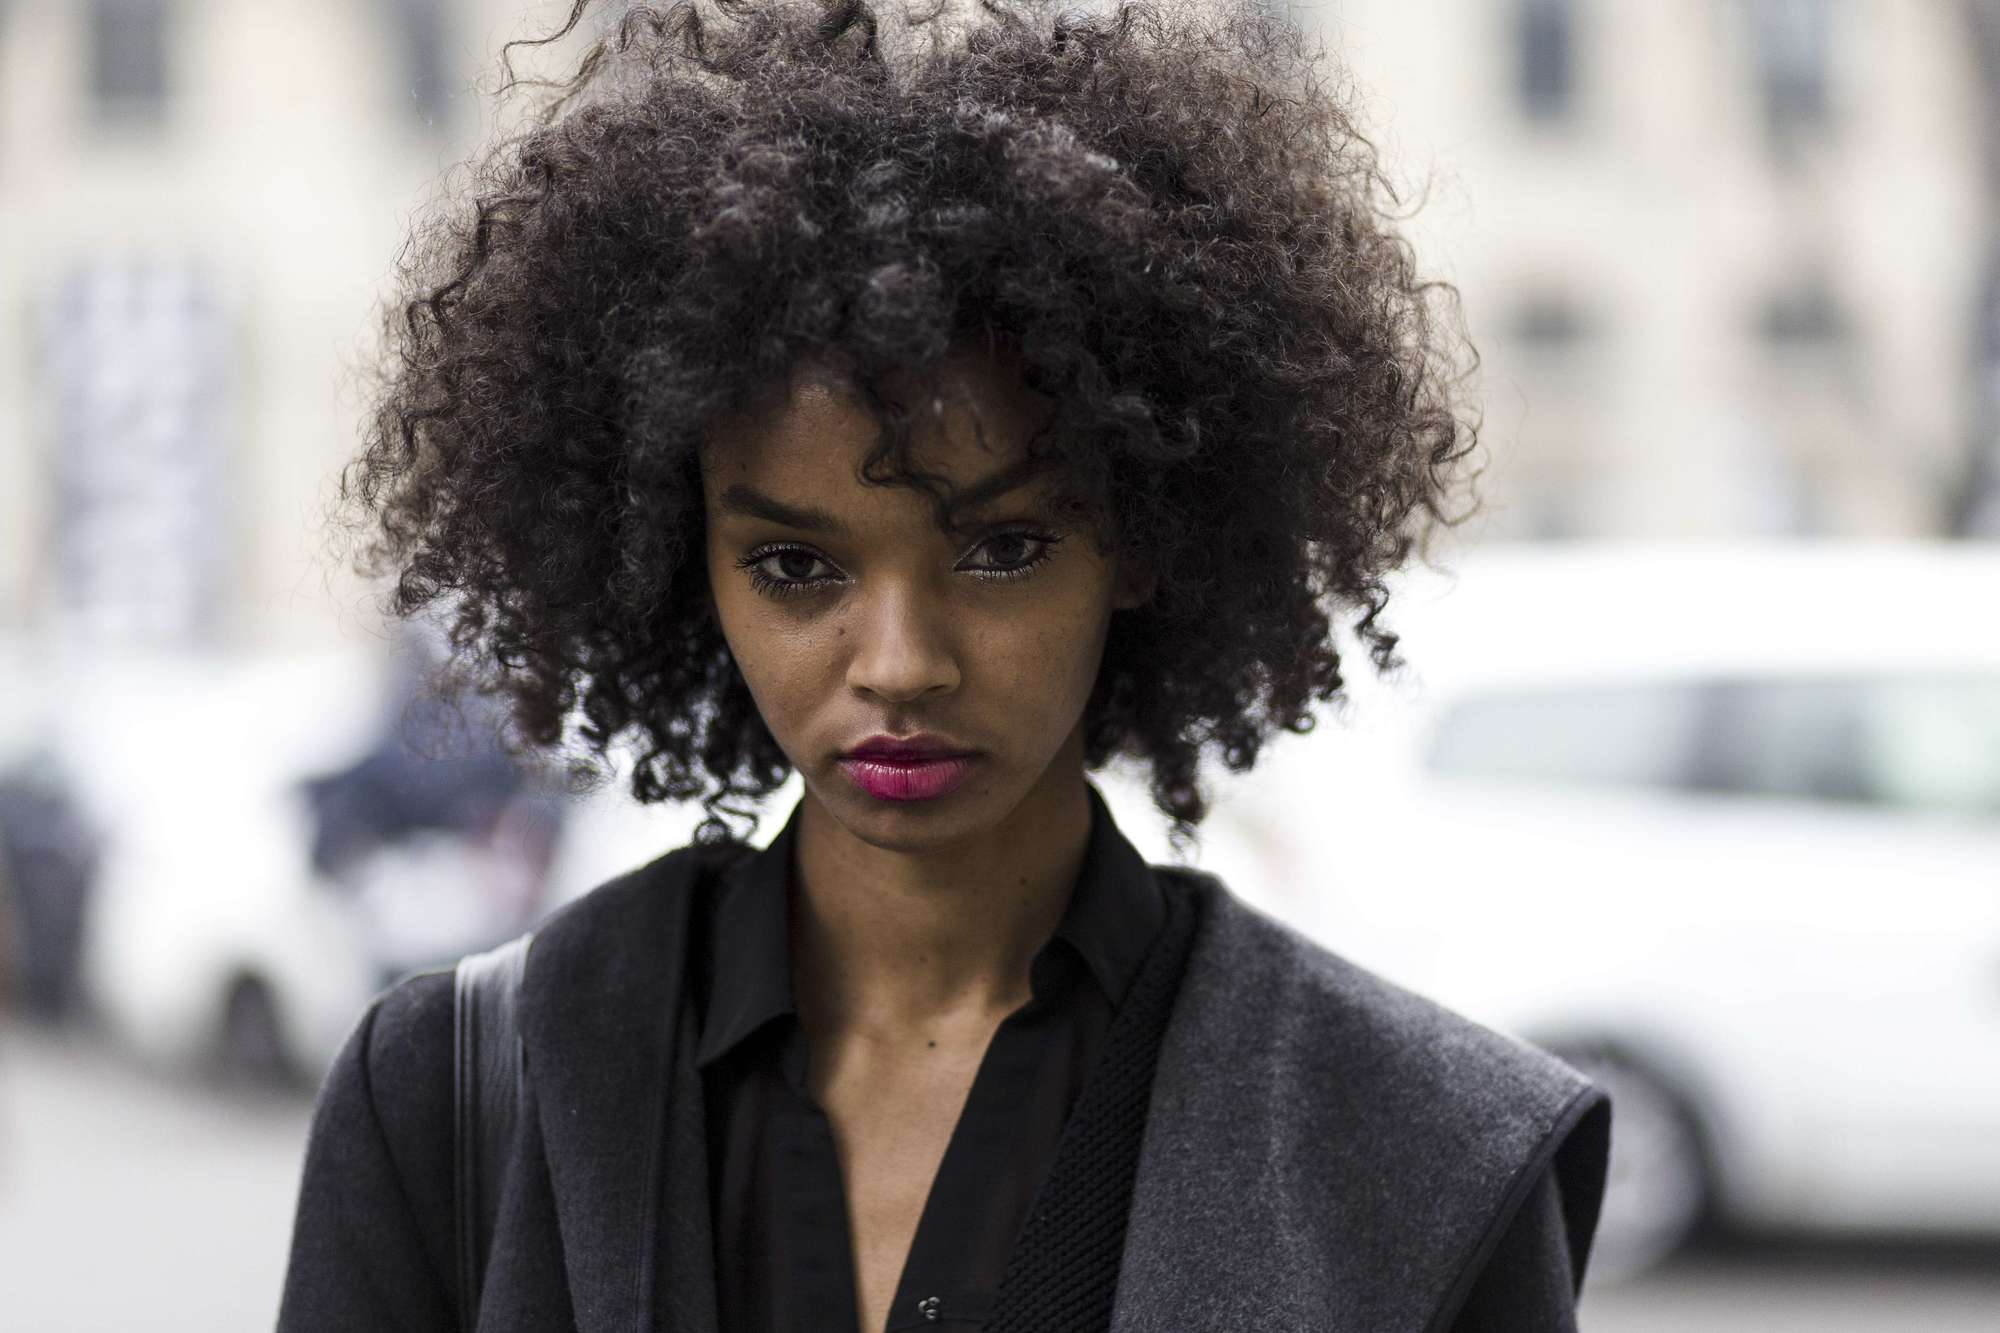 close up street style shot of a model with curly natural hair wearing pink fuchsia lipstick